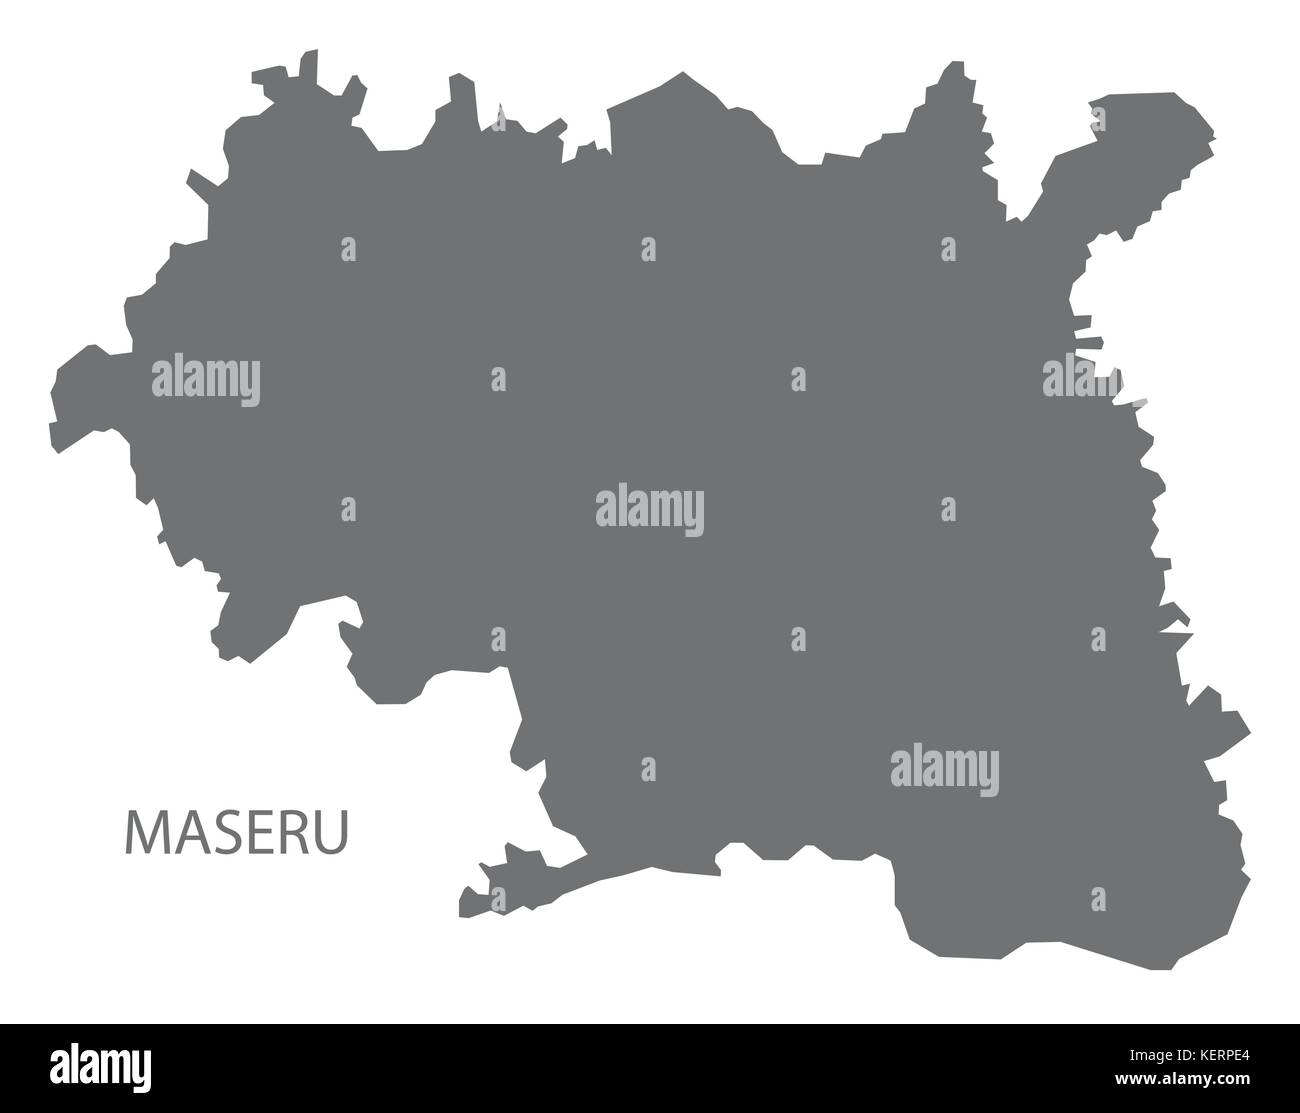 Maseru district map of Lesotho grey illustration silhouette shape